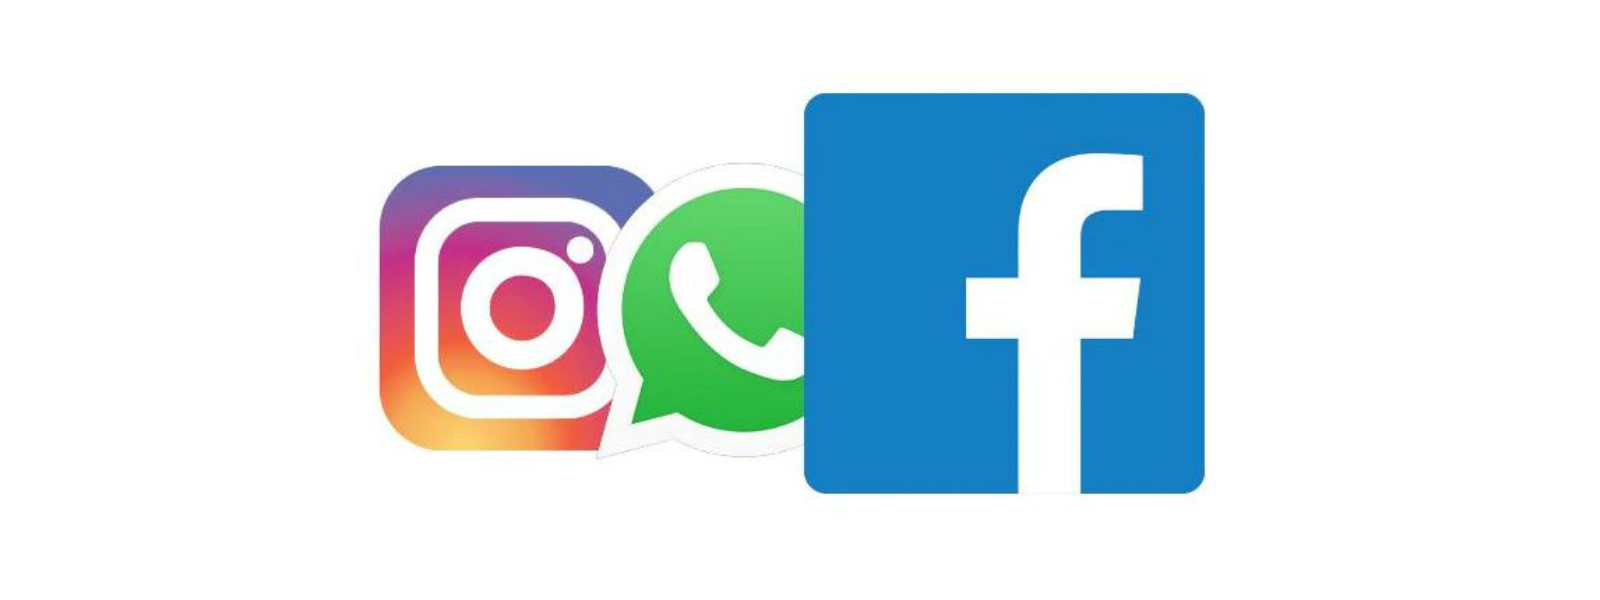 Facebook, Instagram & WhatsApp down in parts of US and Europe